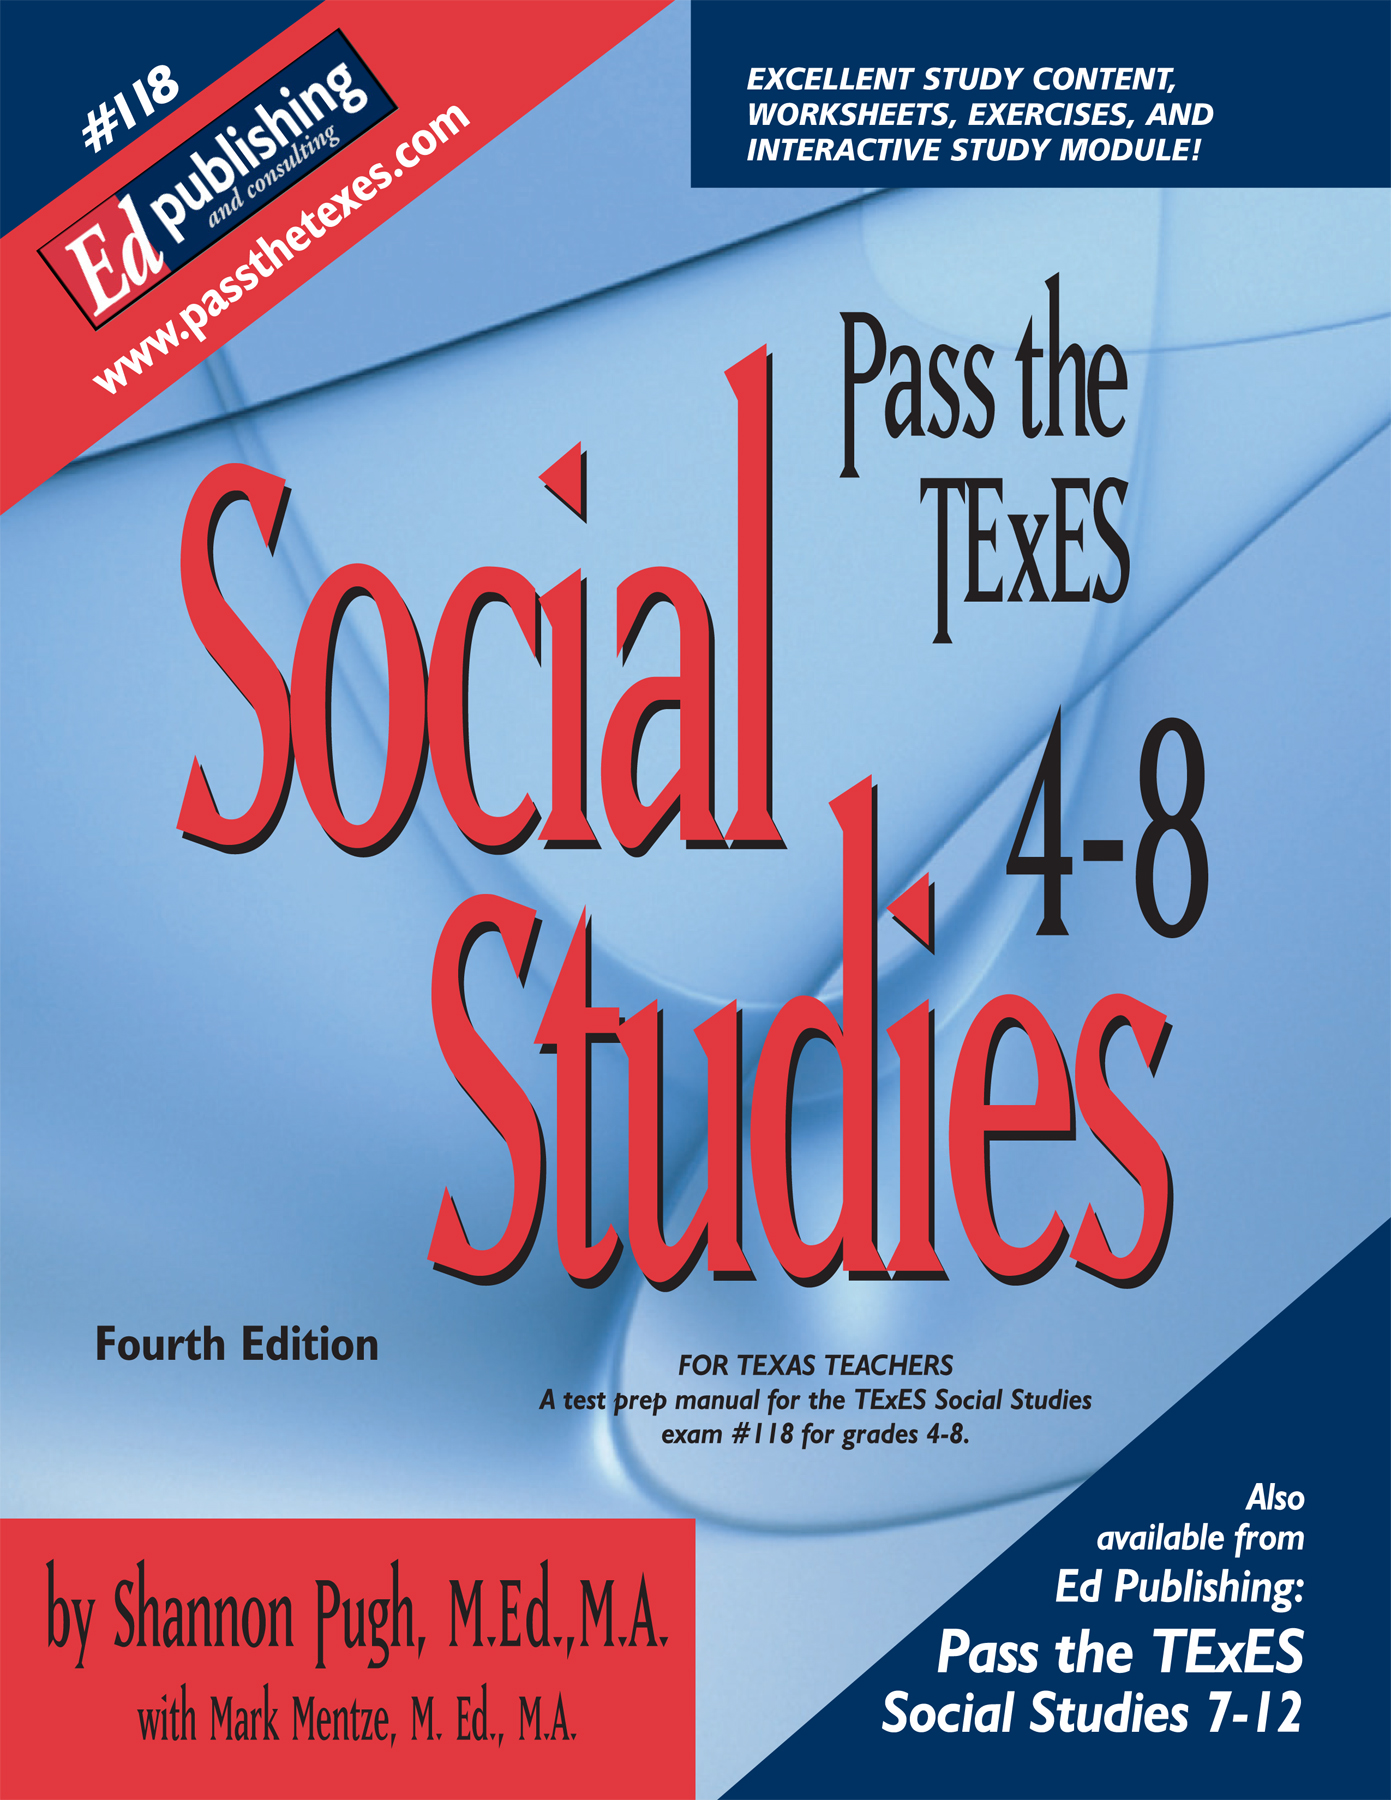 Passing the texes certification exam - Social Studies 4 8 3rd Ed For 118 Hard Copy